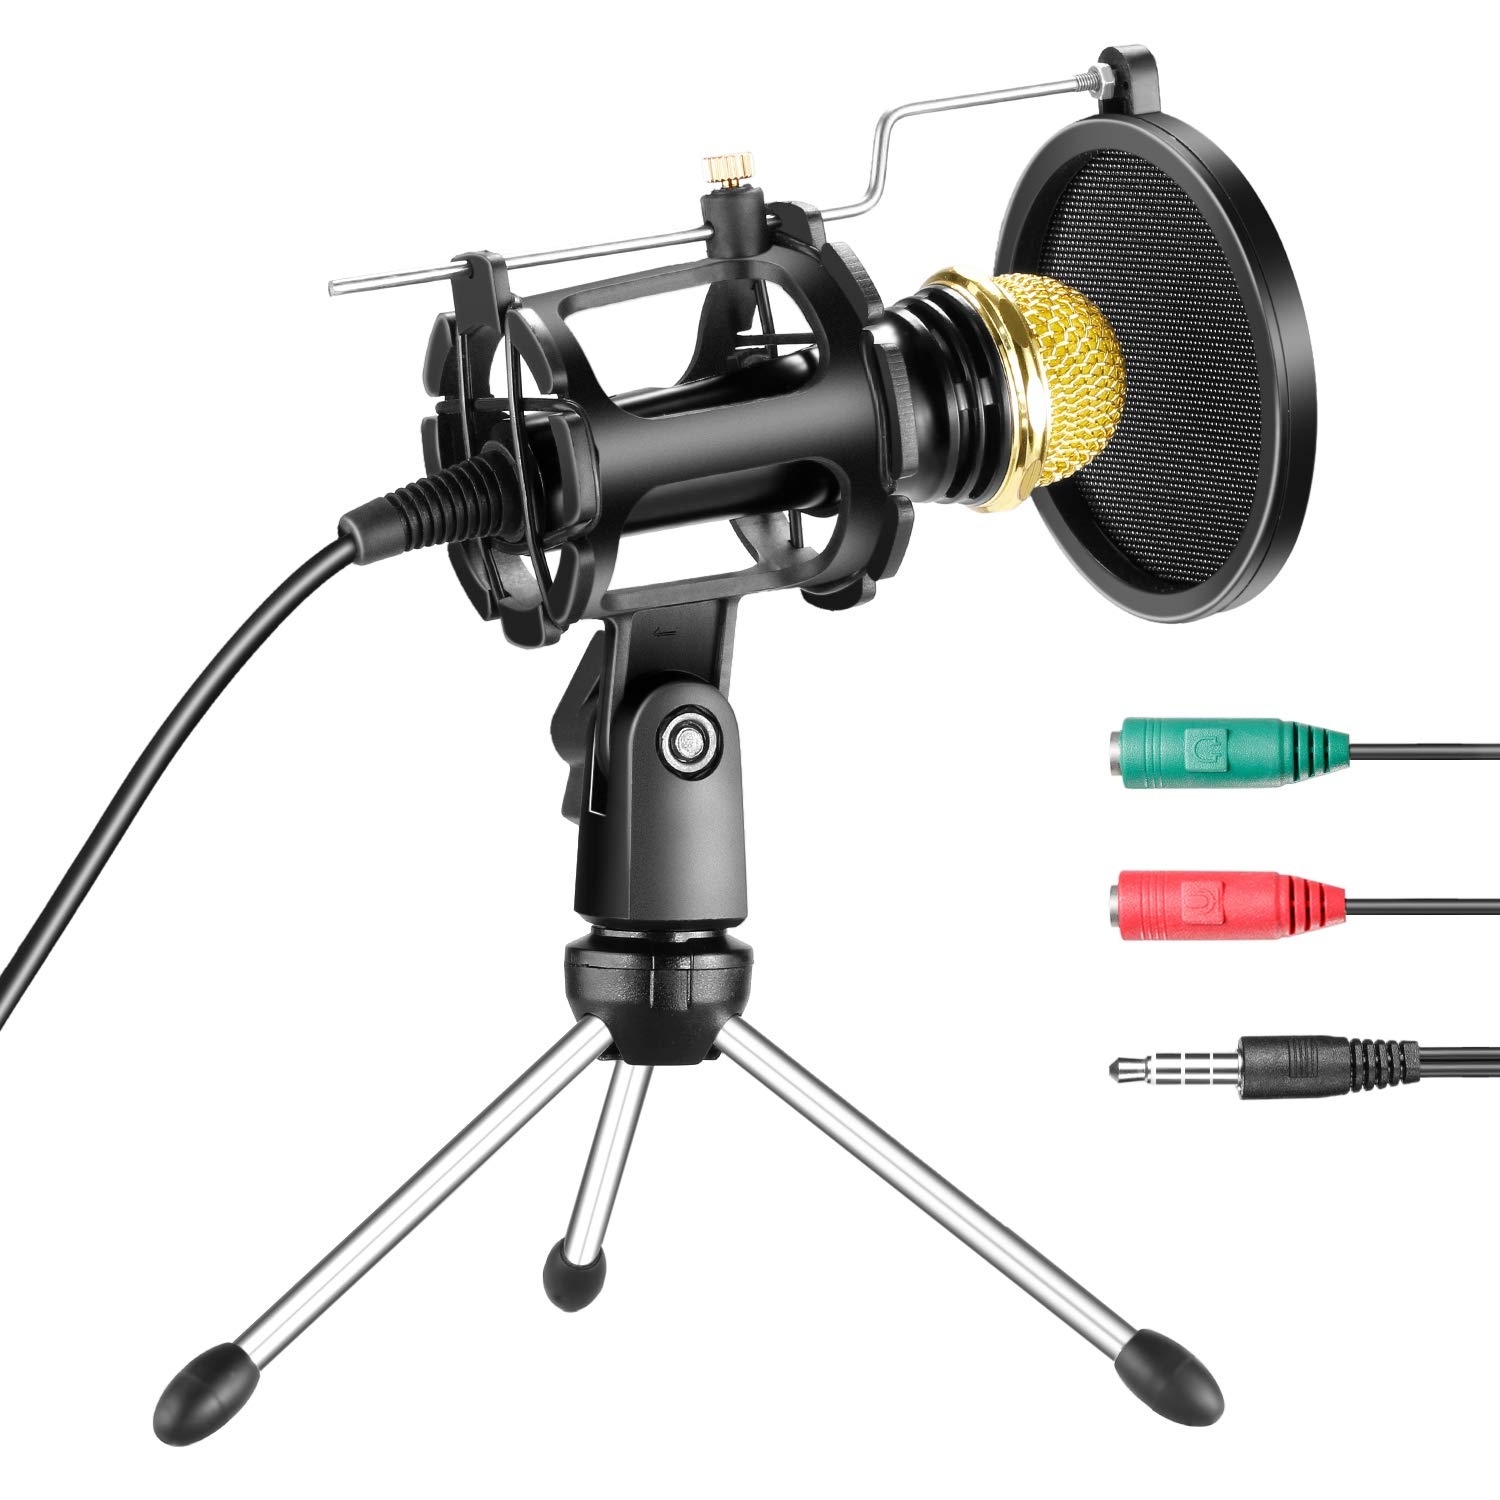 Neewer Professional Home Studio Condenser Microphone Plug and Play with Mini Desktop Mic Stand and Dual-layer Pop Filter for iPhone Android Smartphone PC Computer for Sound Recording Podcasting 40091966